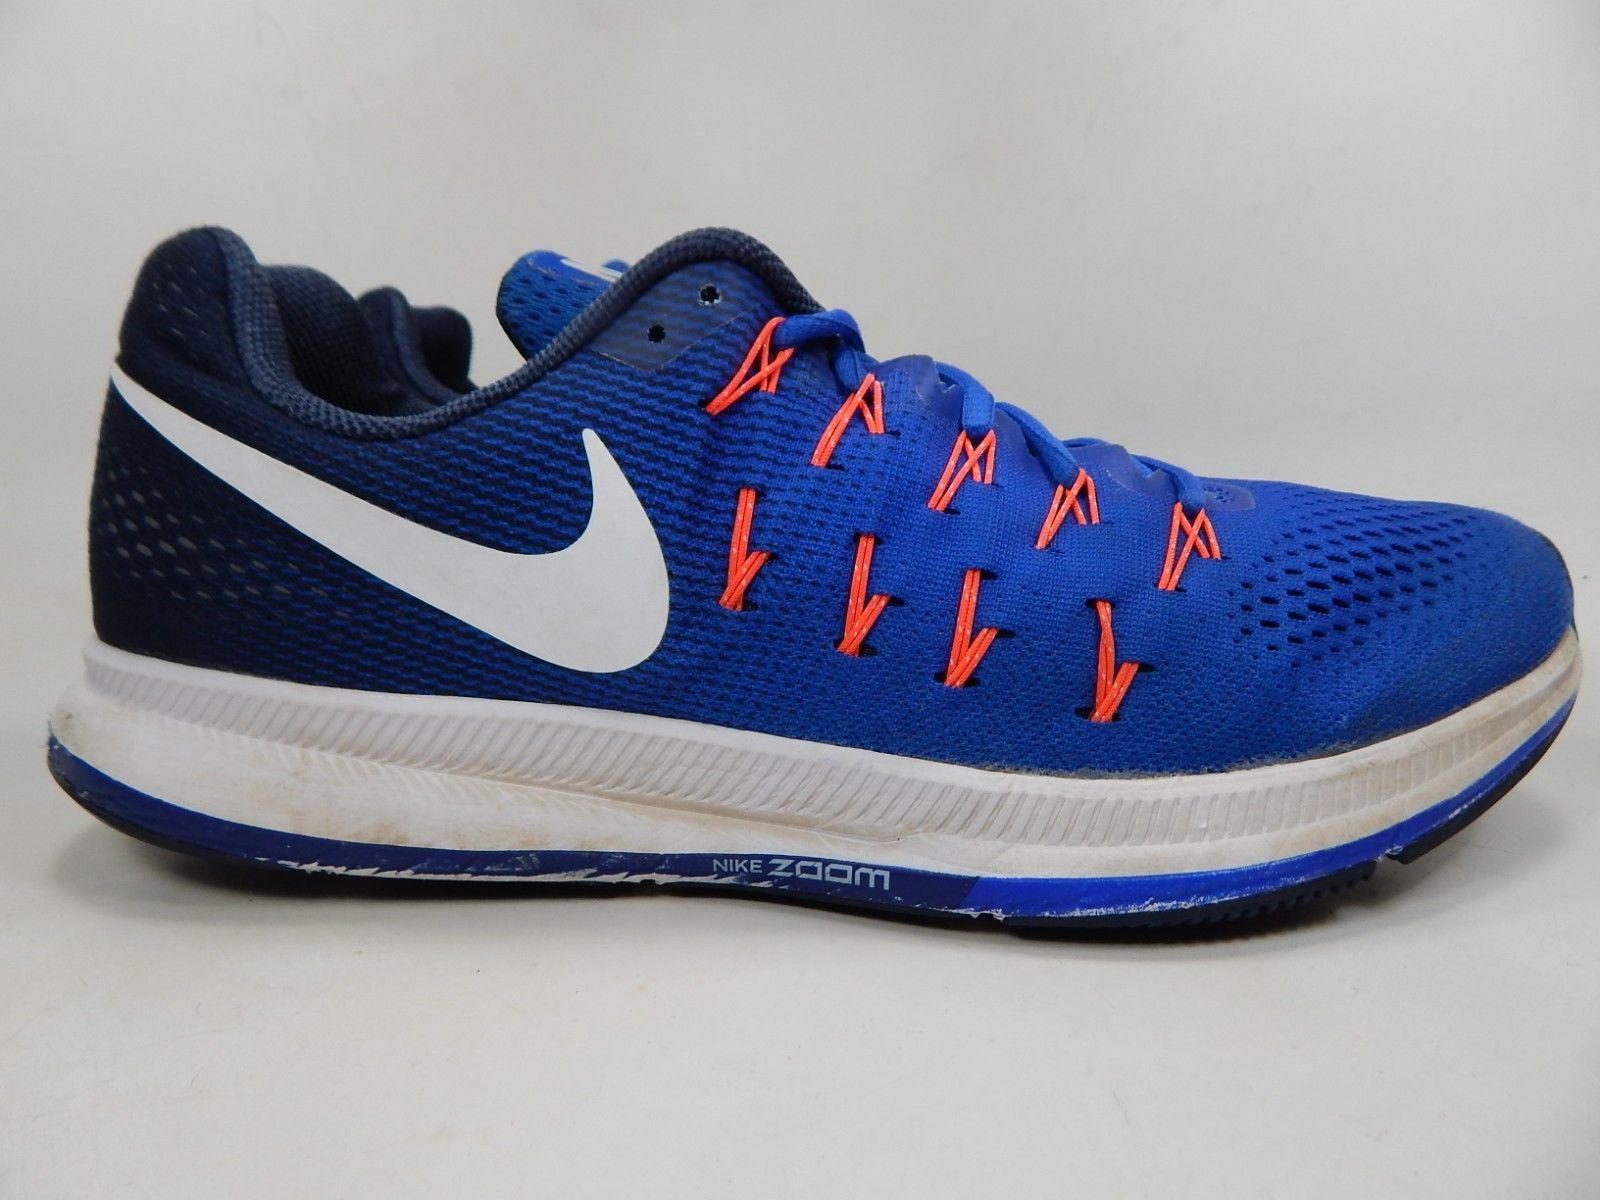 separation shoes d61a8 afb90 Nike Air Zoom Pegasus 33 Size 13 M (D) EU and 50 similar items